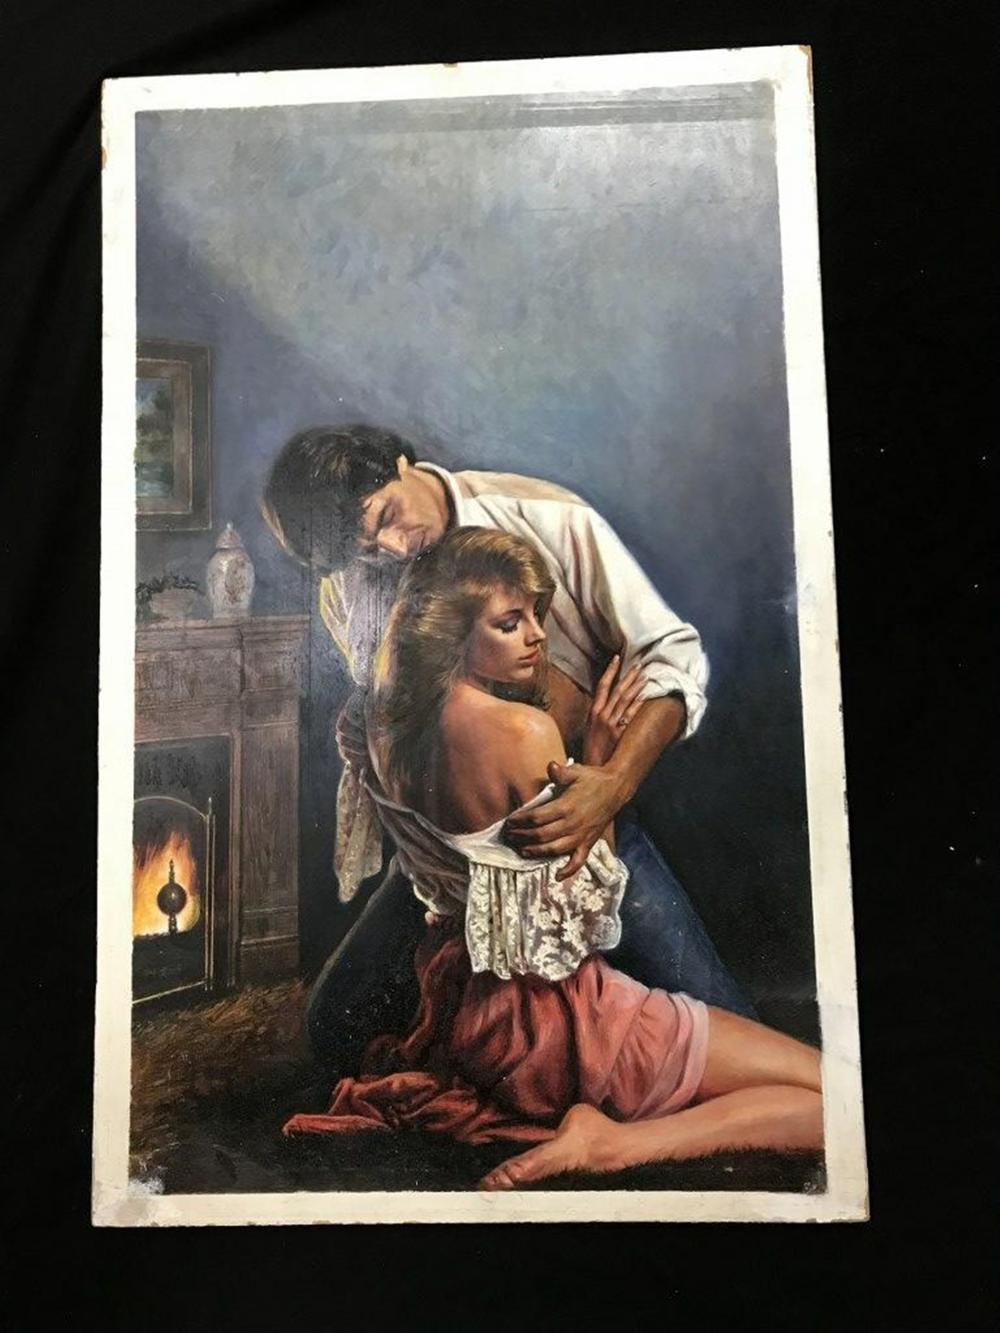 "ORIGINAL ROMANCE NOVEL ILLUSTRATION FOR FRONT COVER, ON BACK IS WRITTEN BANTAM BOOKS, S. ASSEL (STEVEN ASSEL ?) BOARD MEASURES 30"" X 19"", FROM PRIVATE COLLECTION WE ARE SELLING."